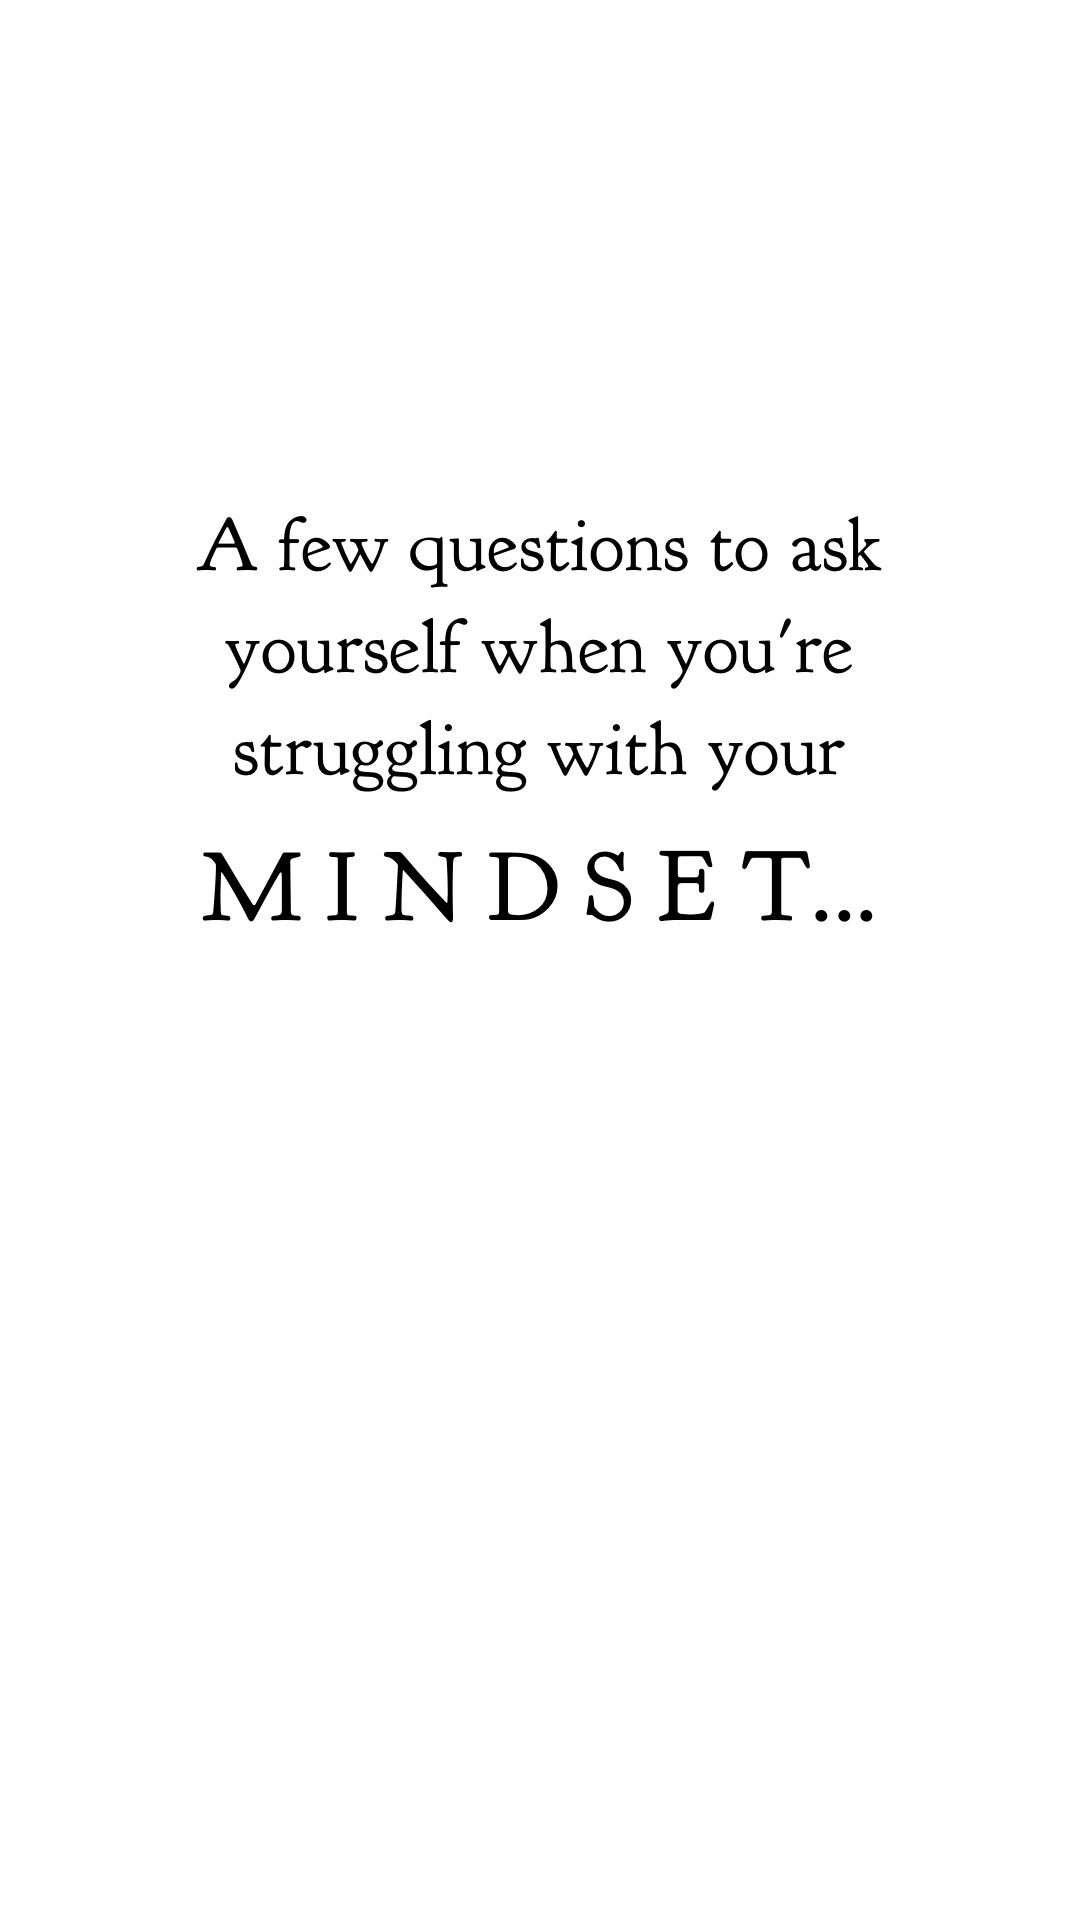 Struggling with your Mindset?